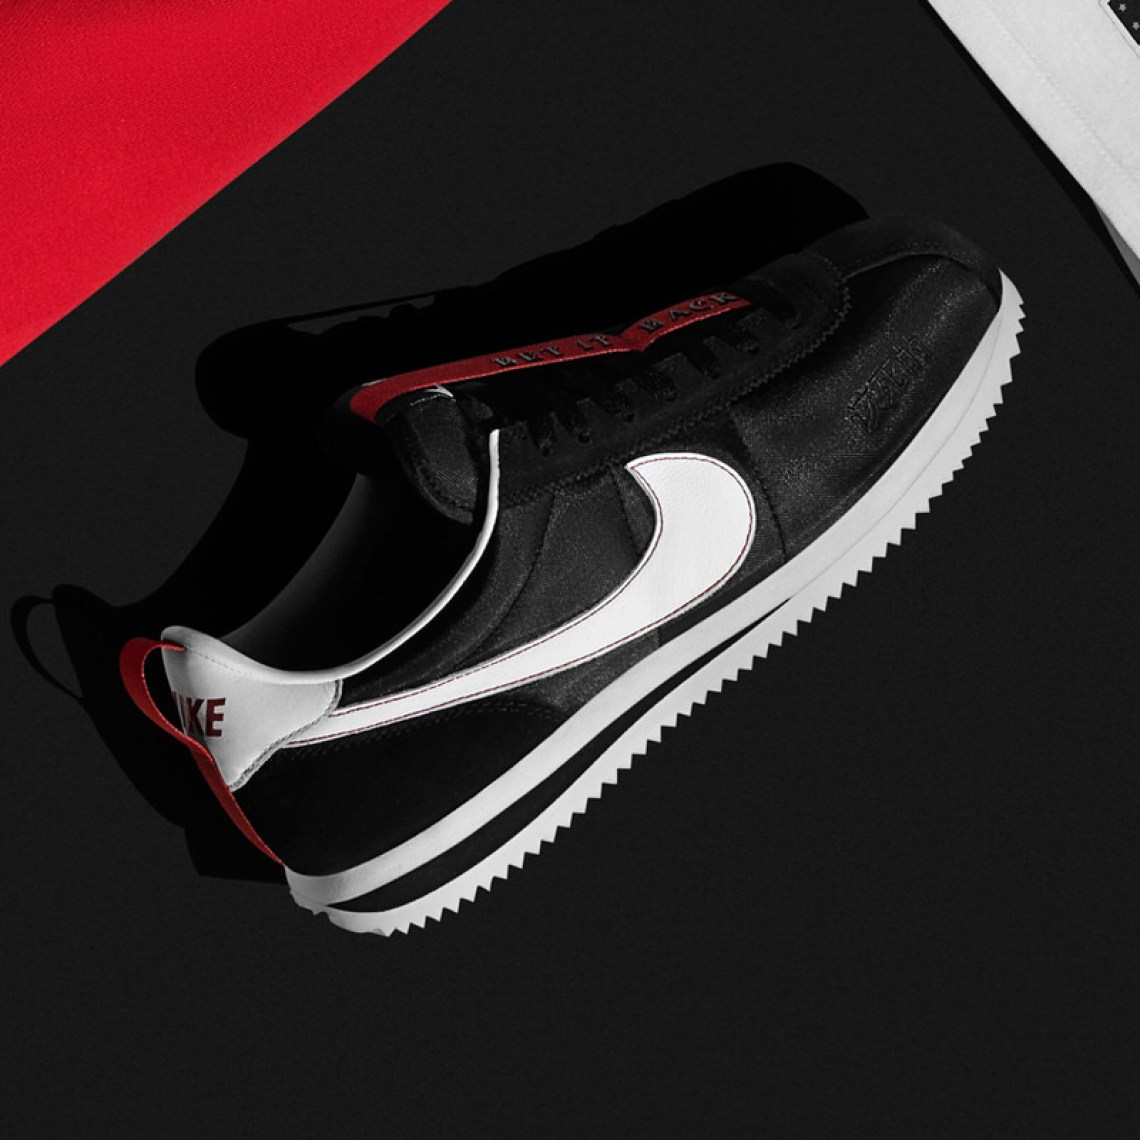 f42062a6 Kendrick Lamar's Nike Tour Merch Will Be Available in Six Cities ...